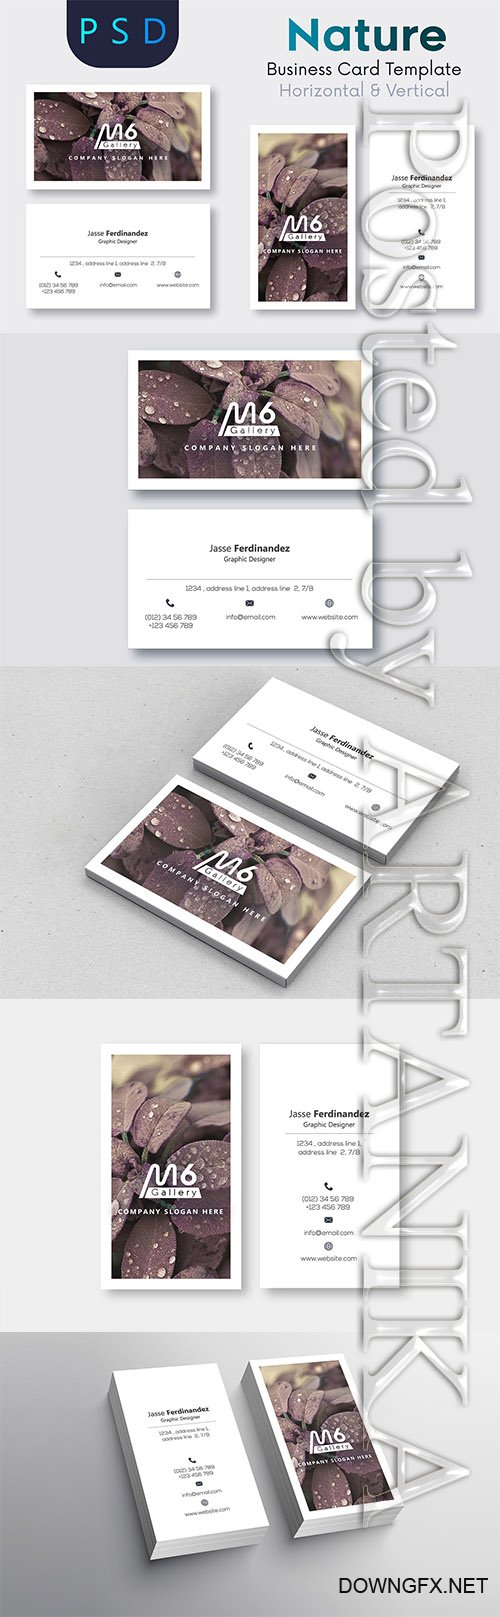 CreativeMarket - Nature Business Card Template - S51 2218925